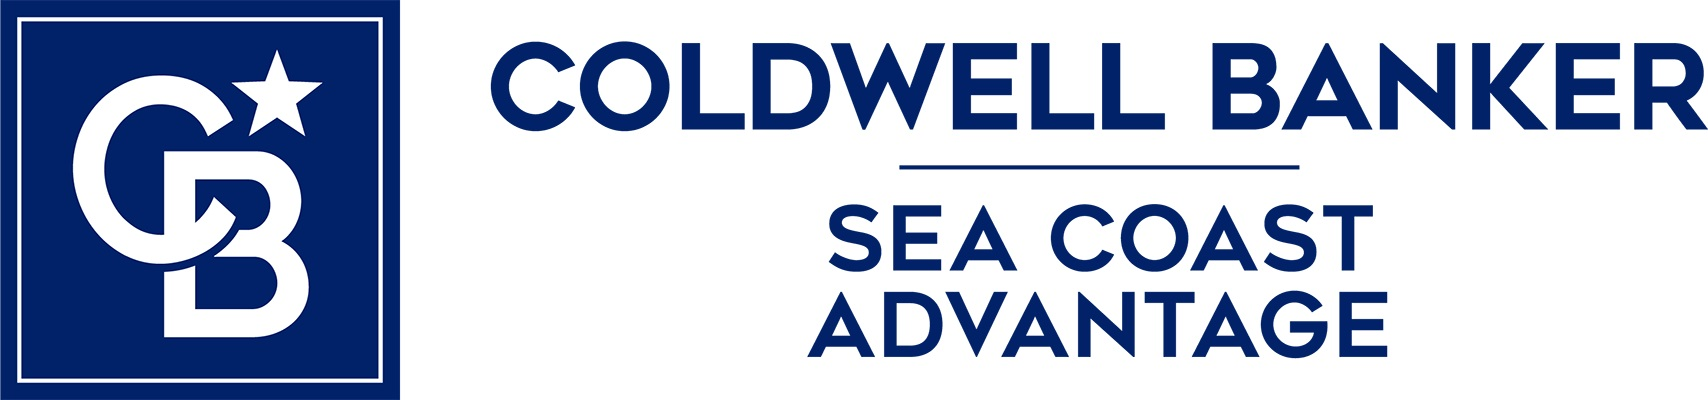 Carly Davis - Coldwell Banker Sea Coast Advantage Realty Logo